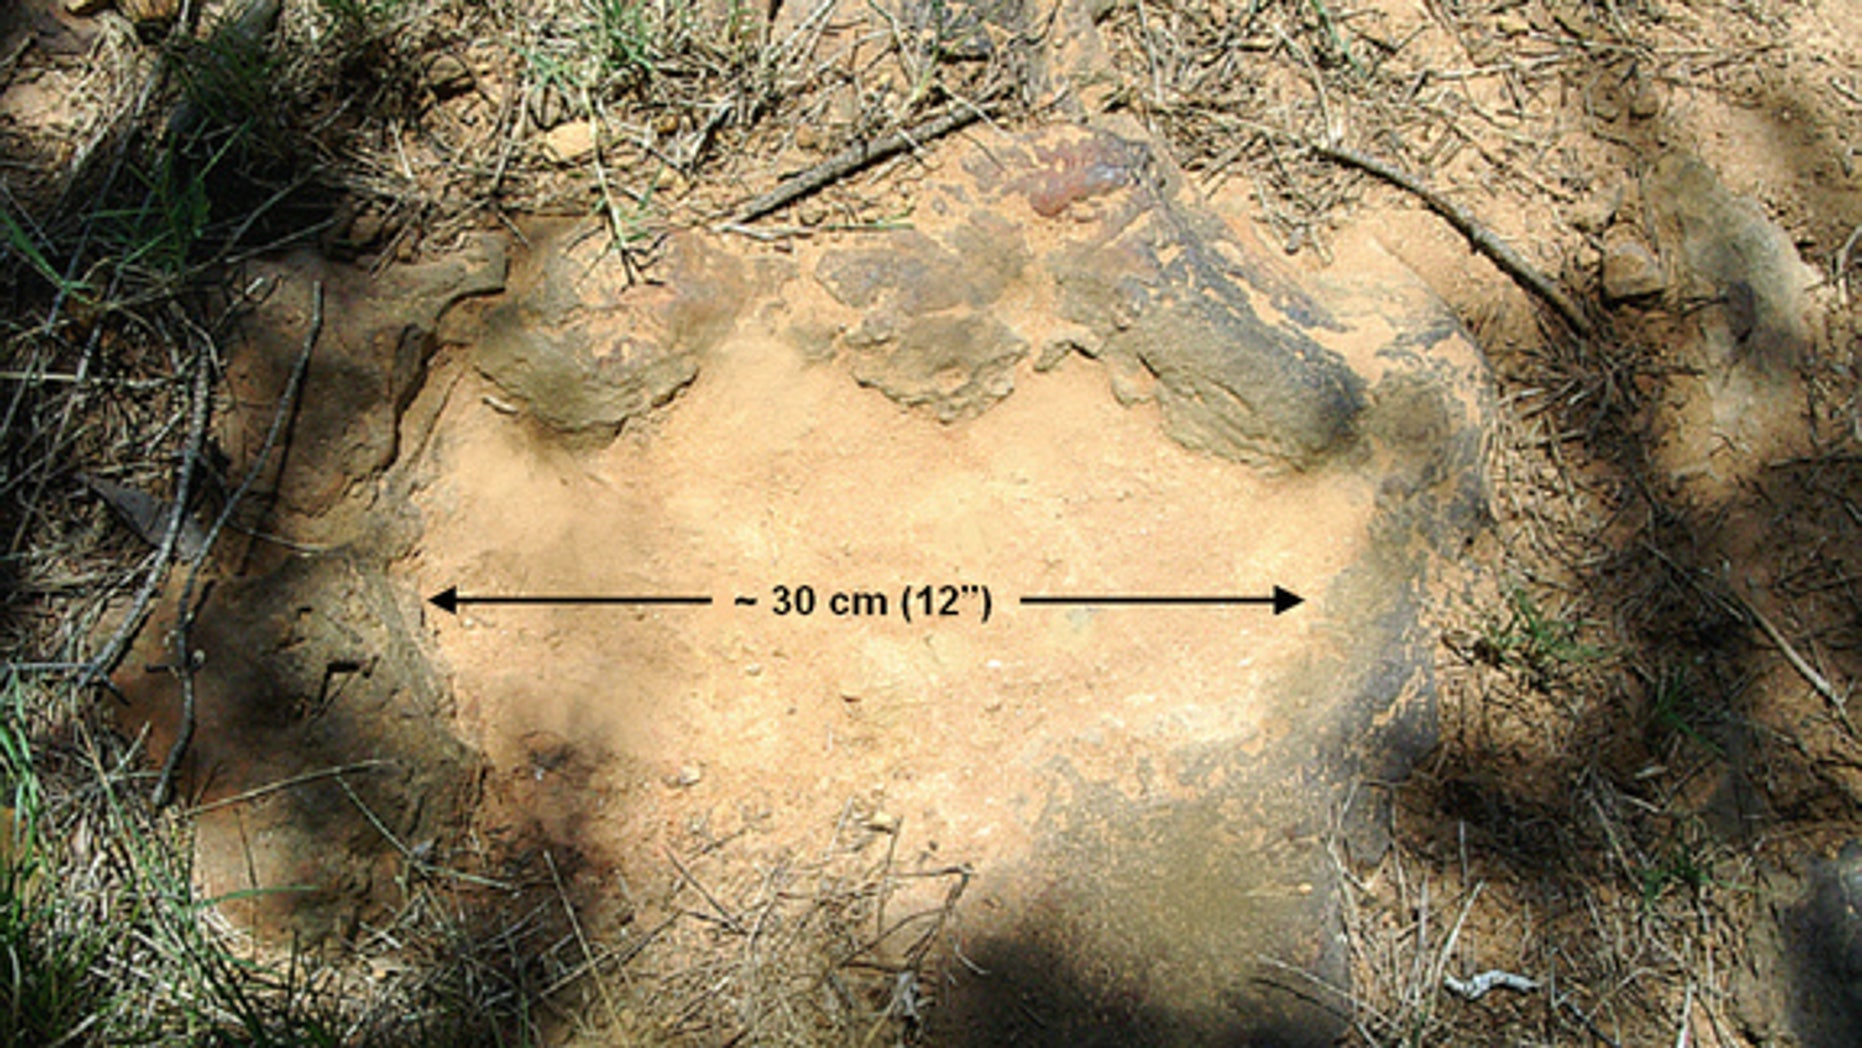 The 12-inch-wide footprint belonged to an armored, tank-like plant-eater.